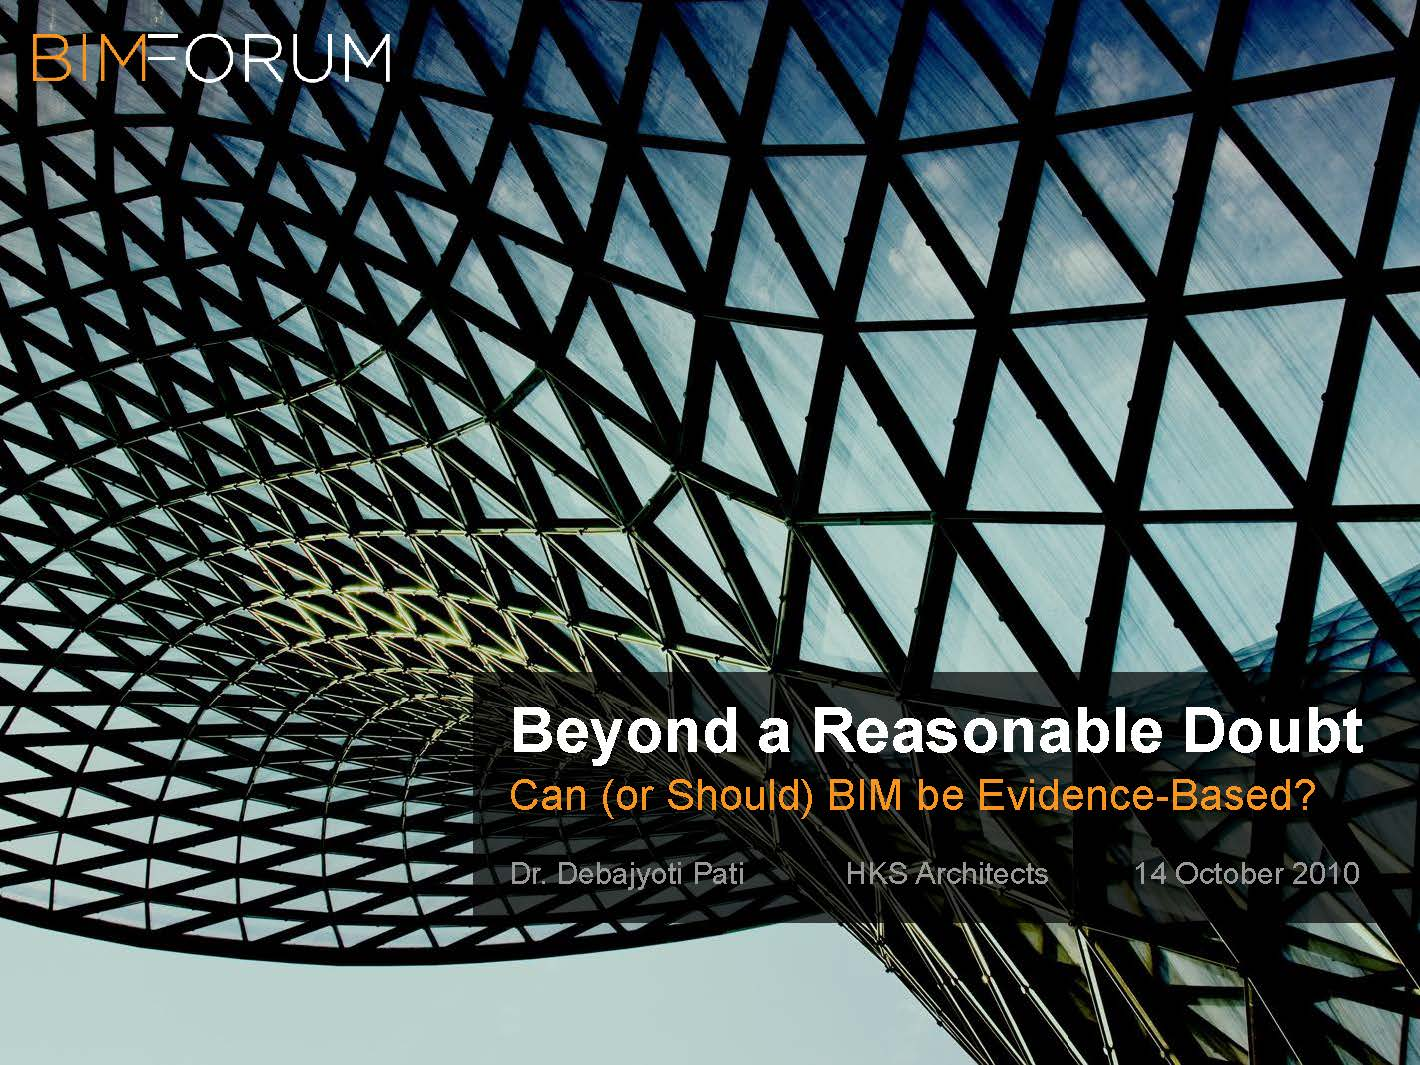 Beyond a Reasonable Doubt: Can (or Should) BIM be Evidence-Based?     Debajyoti Pati    BIM Forum